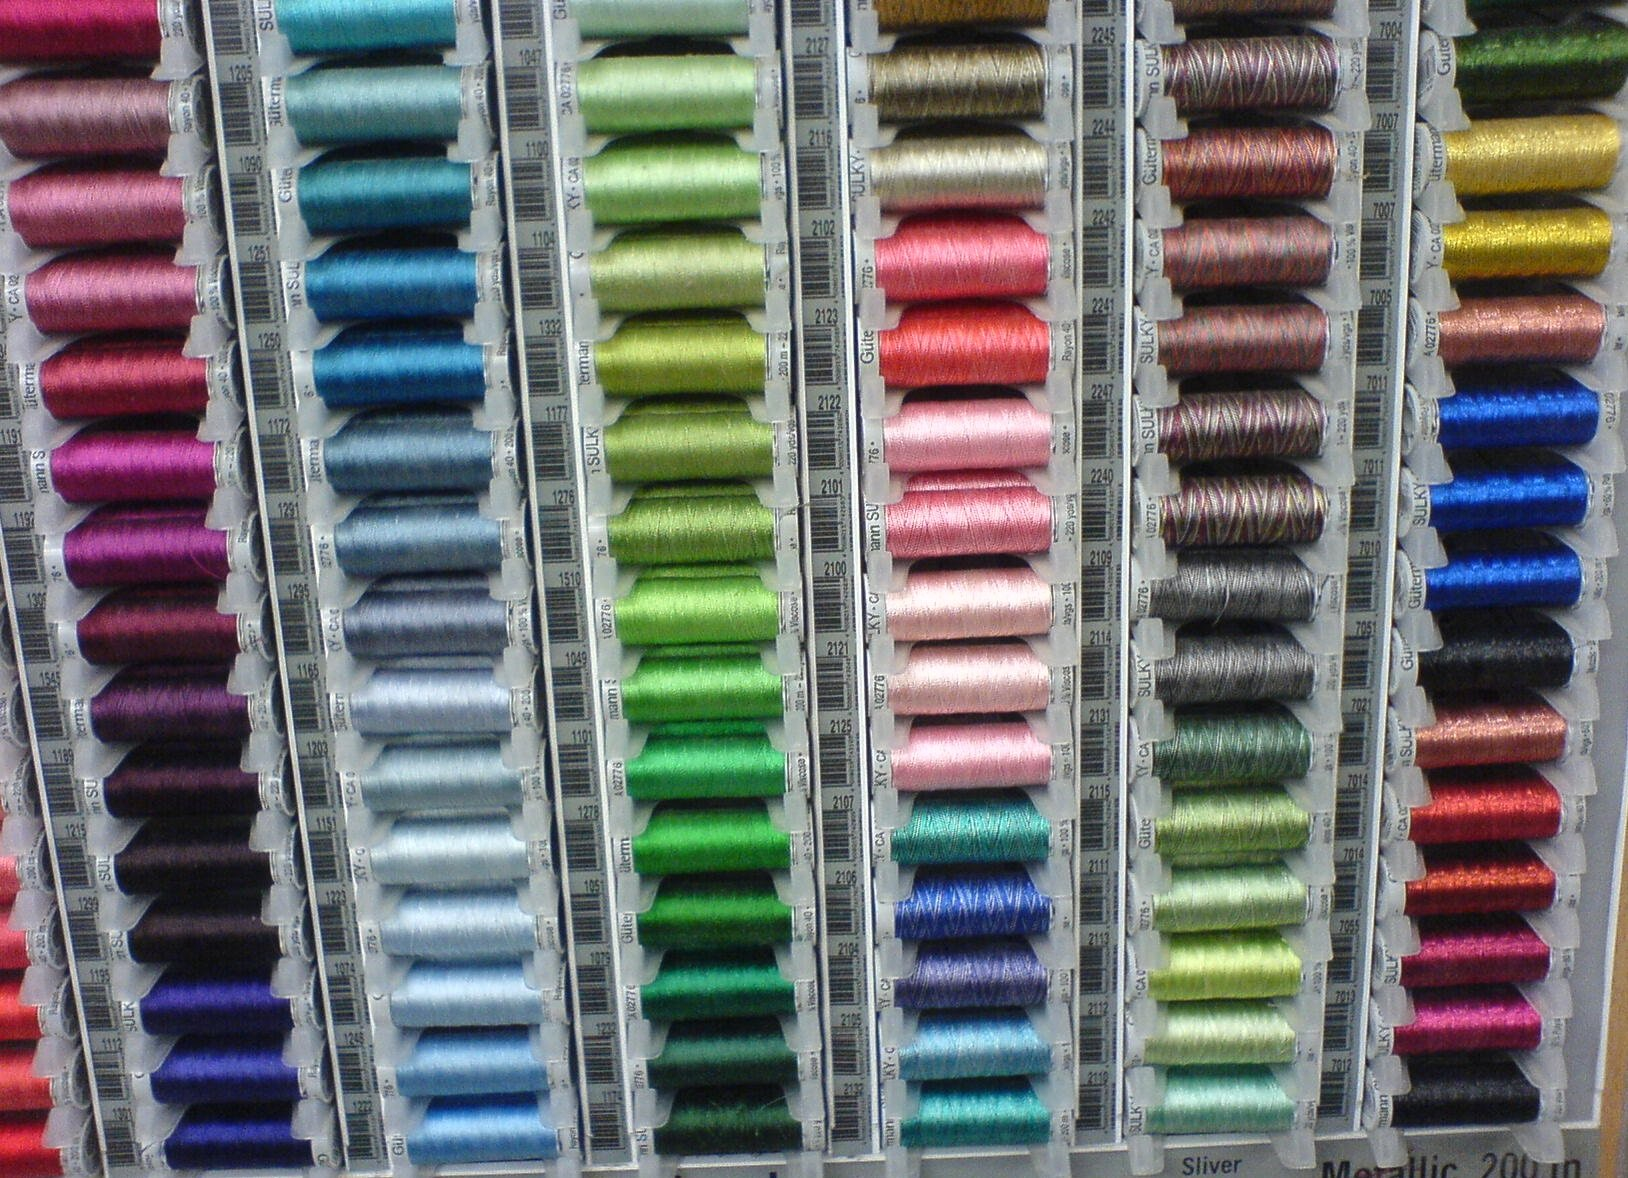 Silk threads in The Sewing Shop